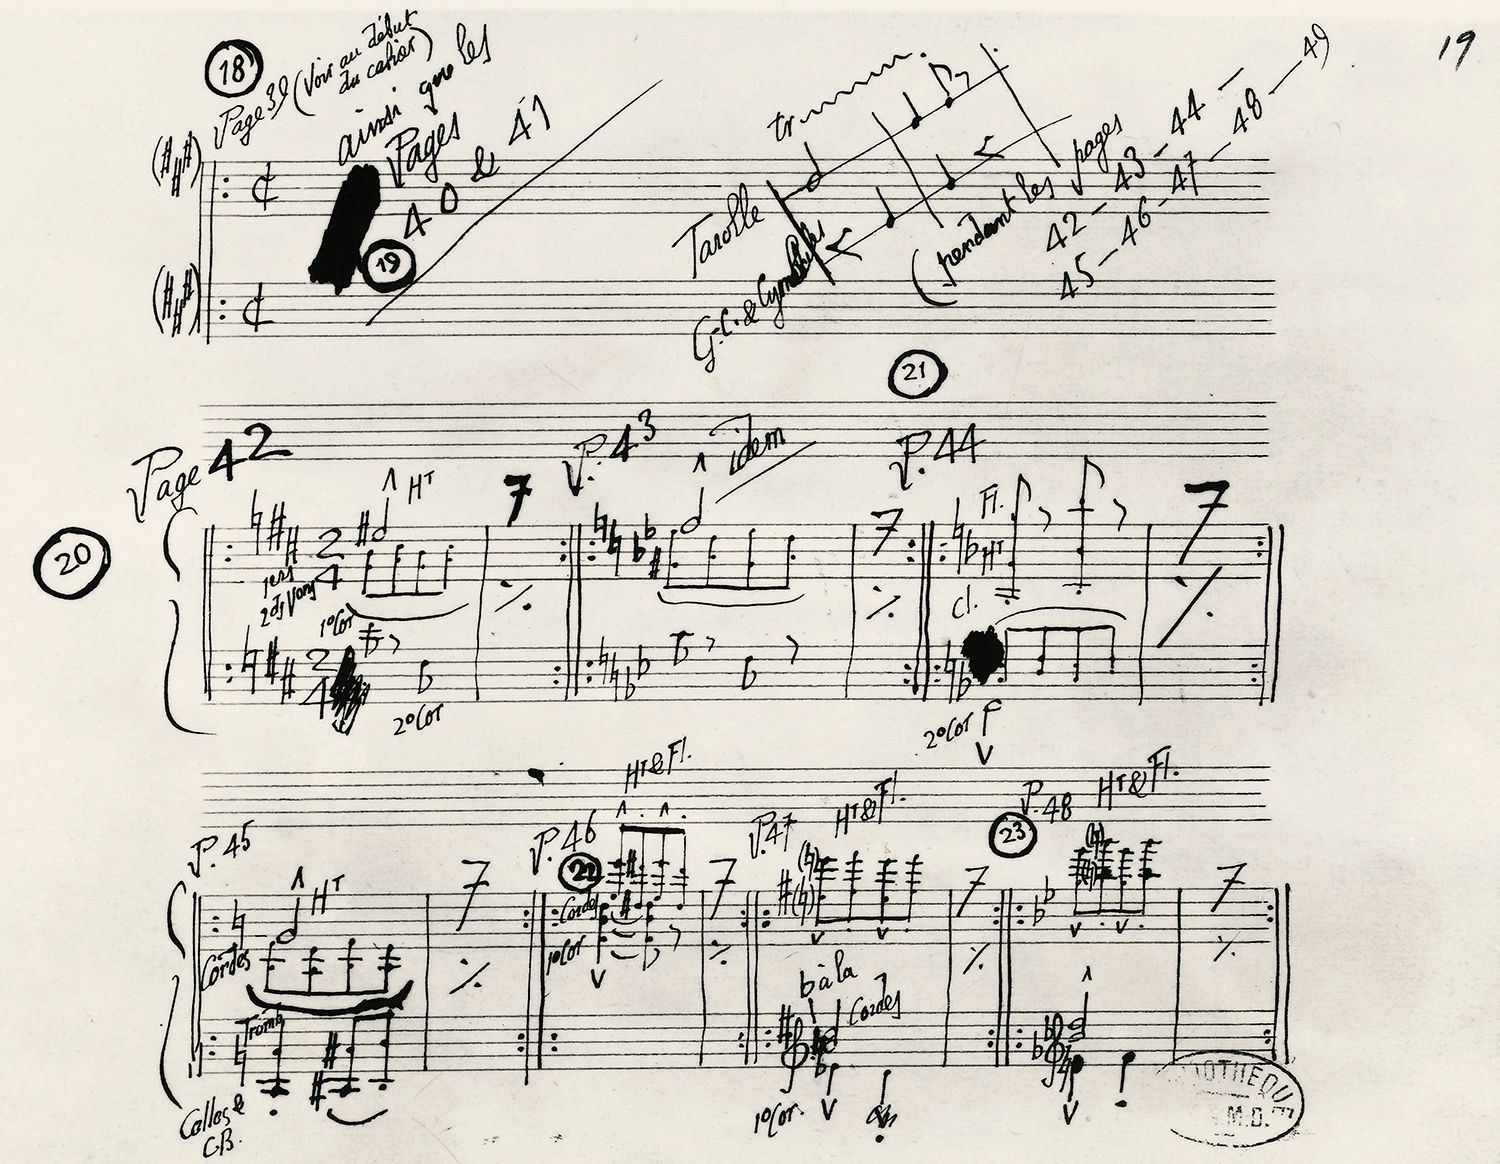 f67c5bcb6db Dotted Notes and Rests Meaning in Music